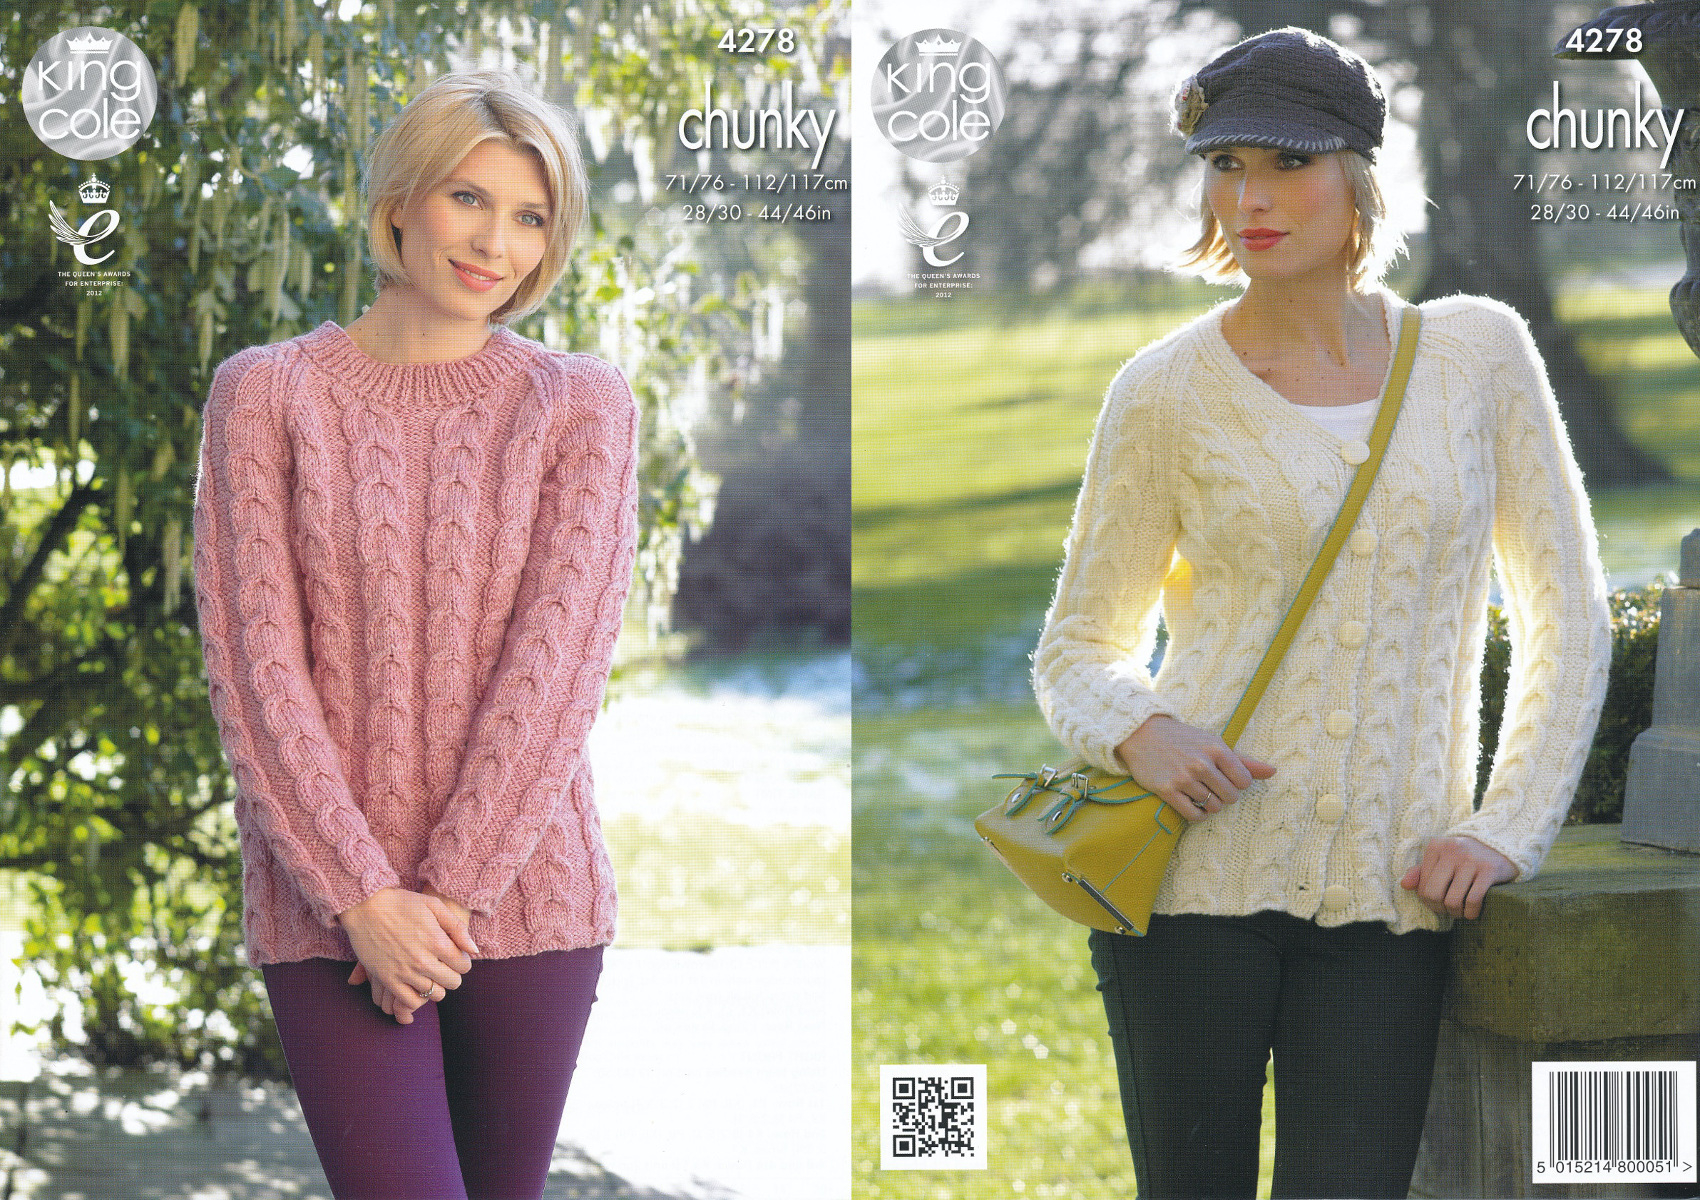 Knitted Jacket Patterns Details About King Cole Womens Chunky Knitting Pattern Ladies Cable Knit Sweater Cardigan 4278